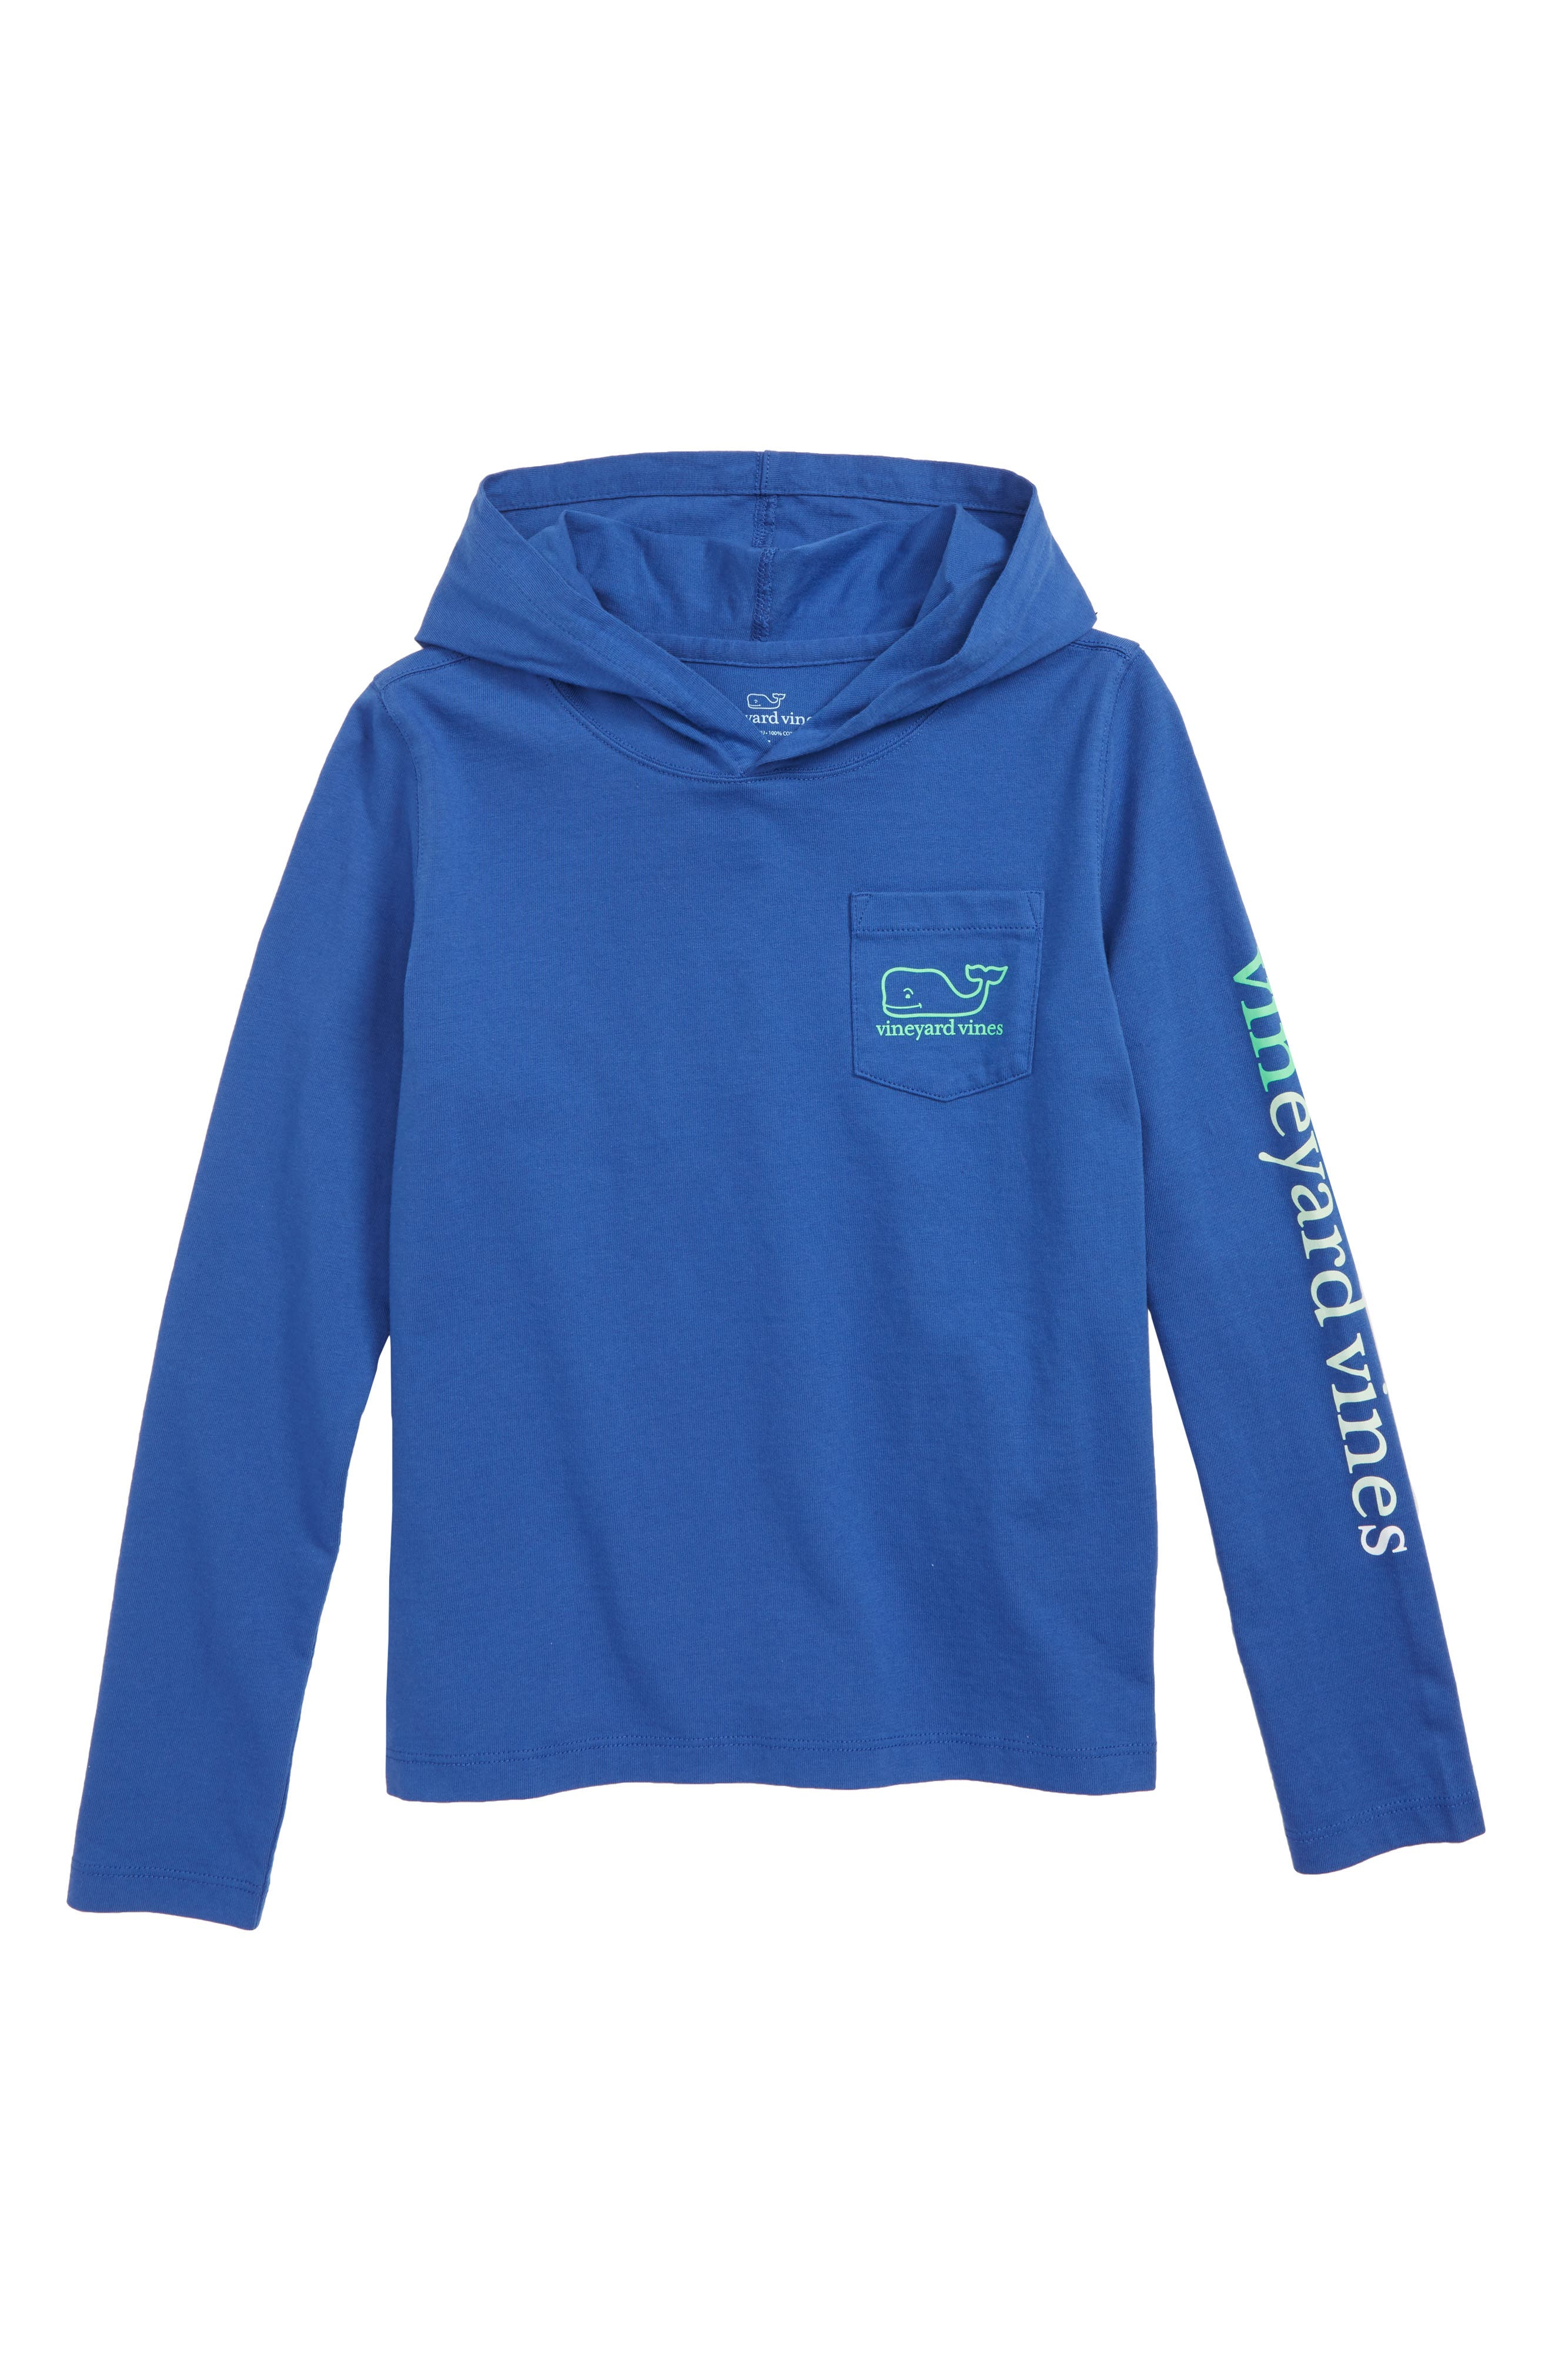 Long Sleeve Whale Hoodie,                         Main,                         color, ROYAL OCEAN